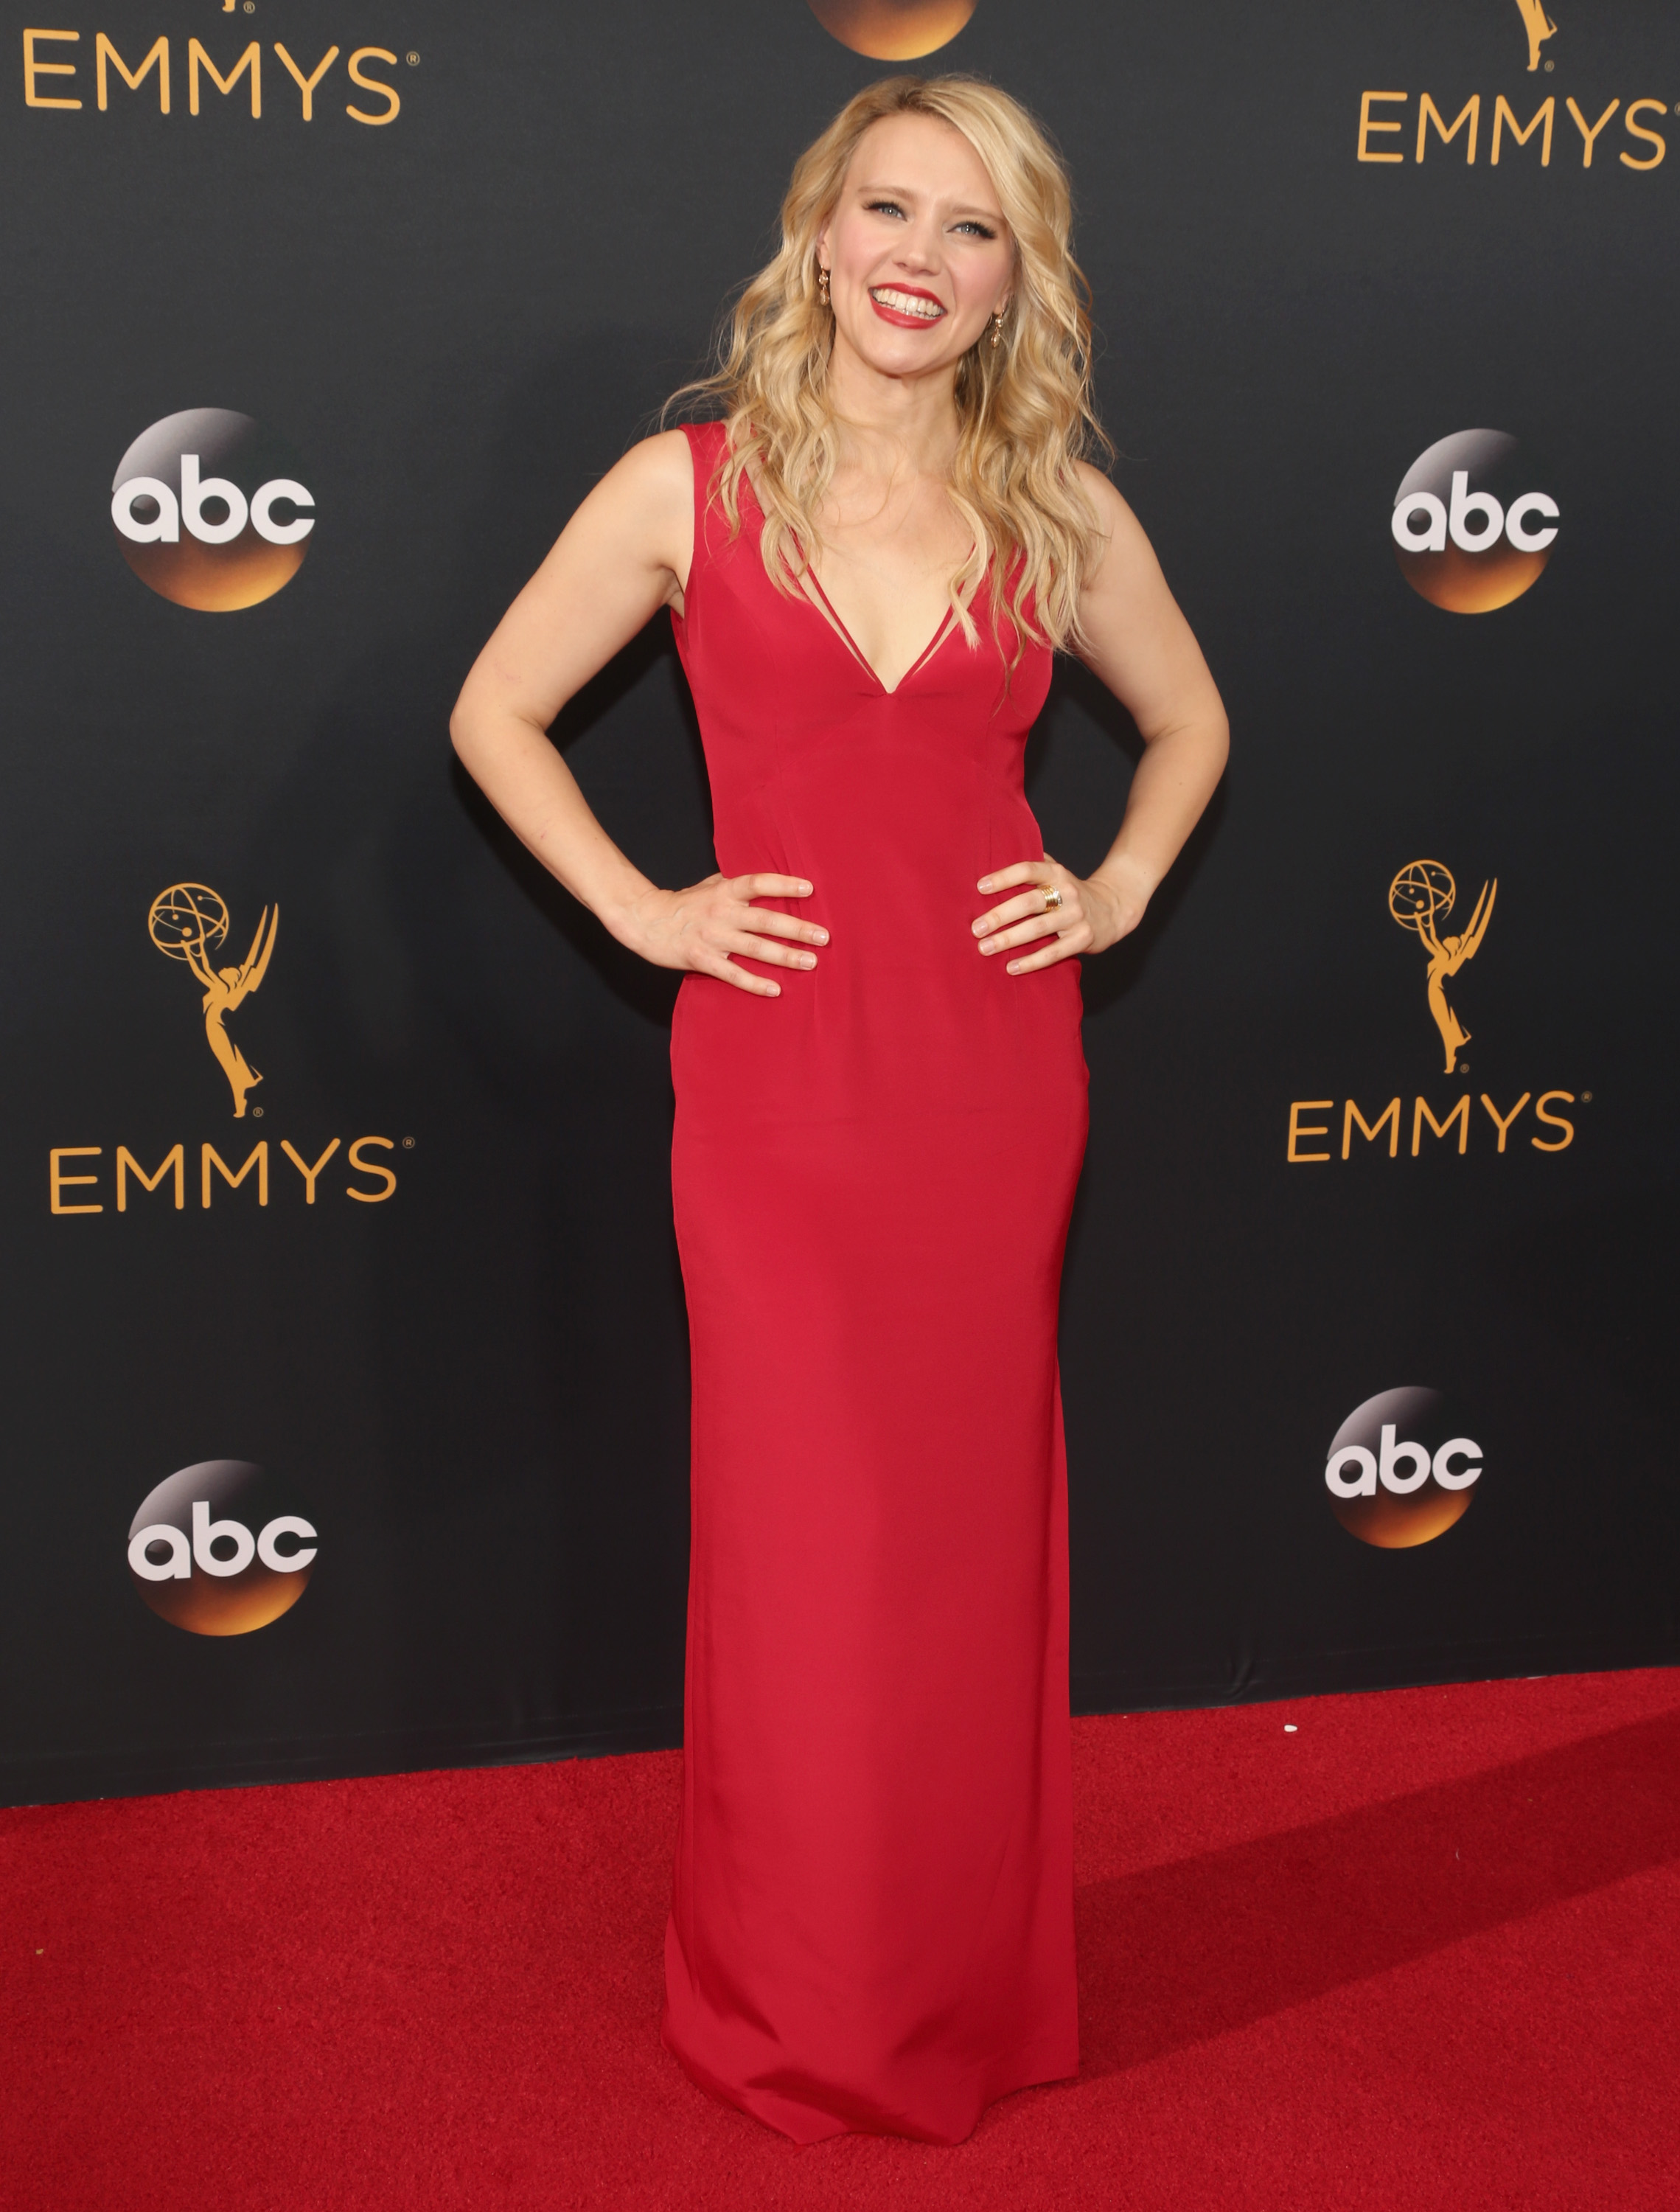 Kate McKinnon arrives at the 68th Annual Primetime Emmy Awards at Microsoft Theater on Sept. 18, 2016 in Los Angeles.